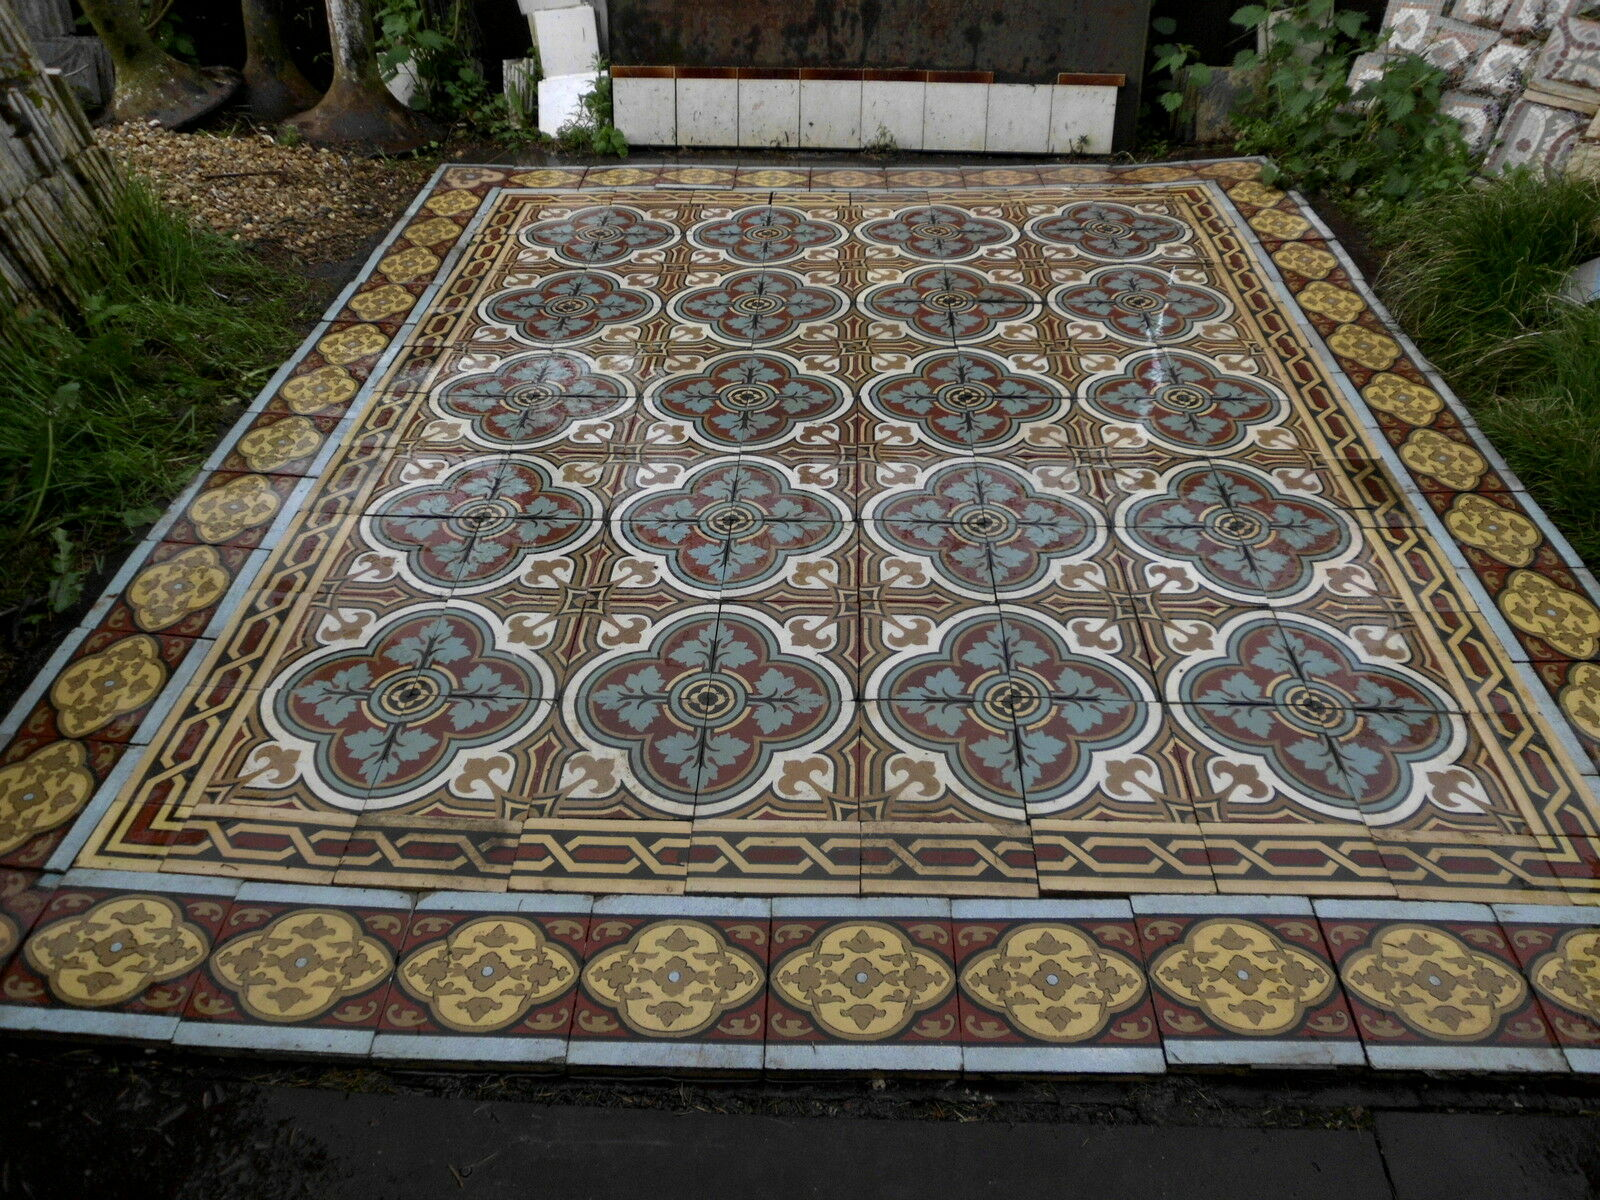 Carrelage ancien perusson villeroy boch metlach xviii for Carrelage ancien